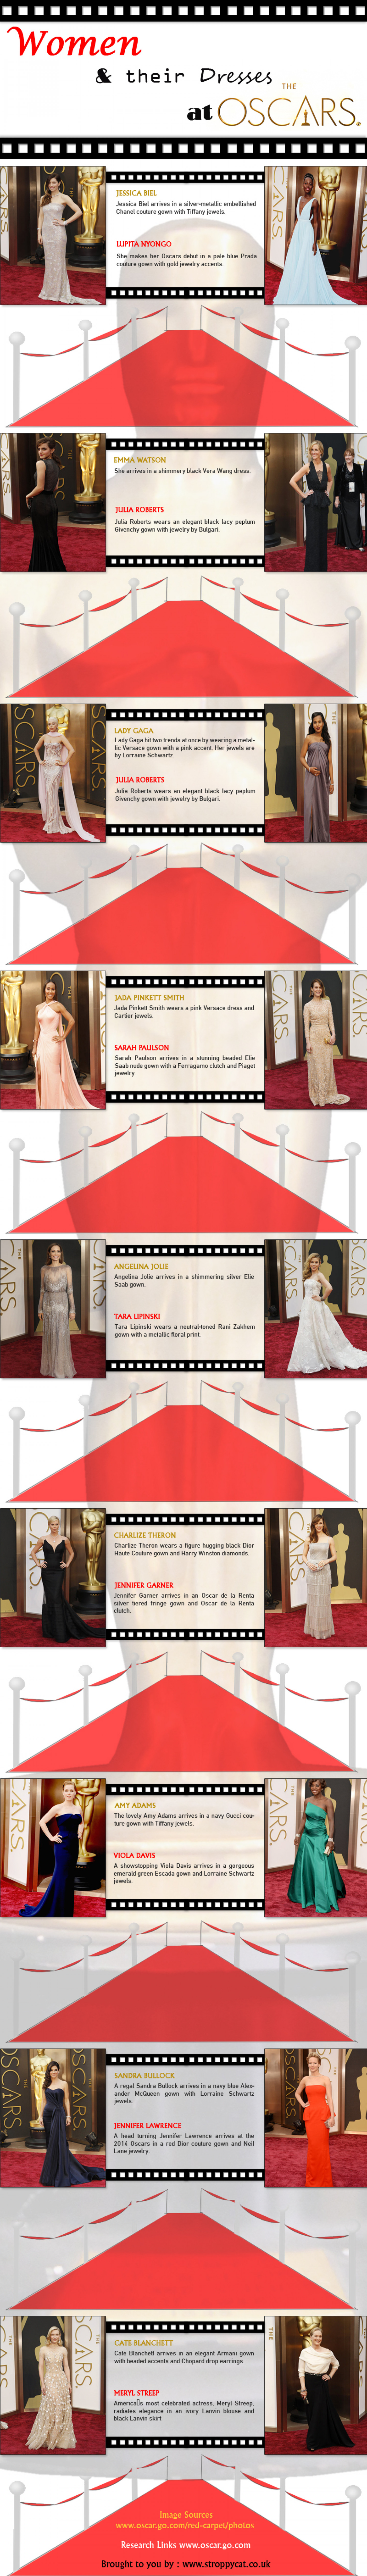 Women And Their Dresses At The Oscars Infographic